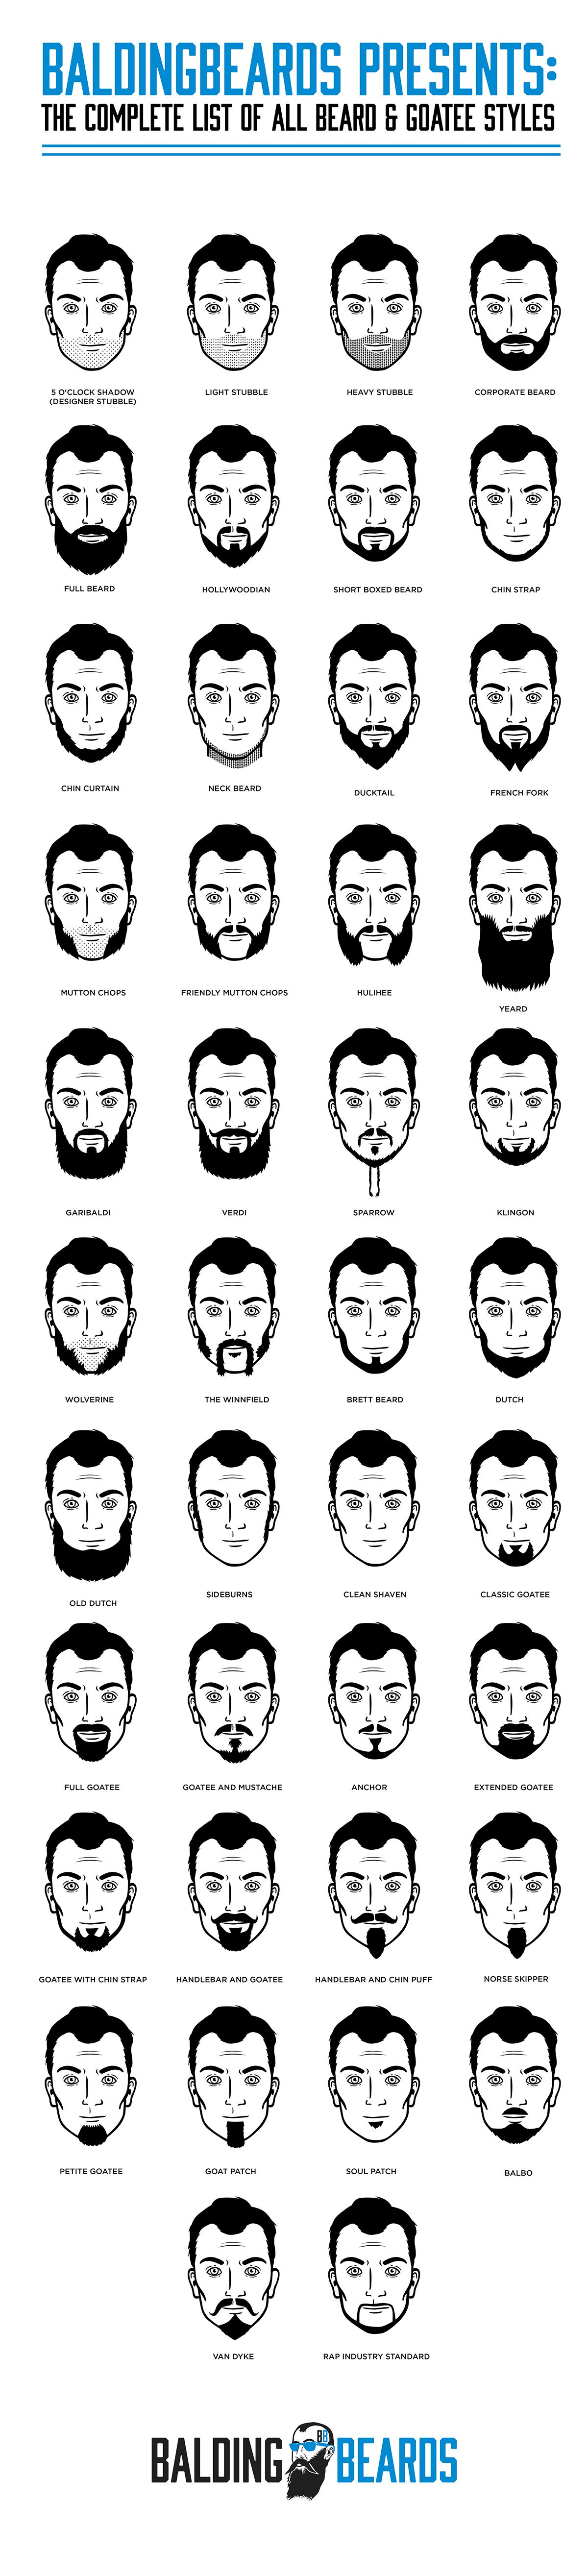 Mens Goatee | Well Groomed Beard | Beard and Mustache Styles